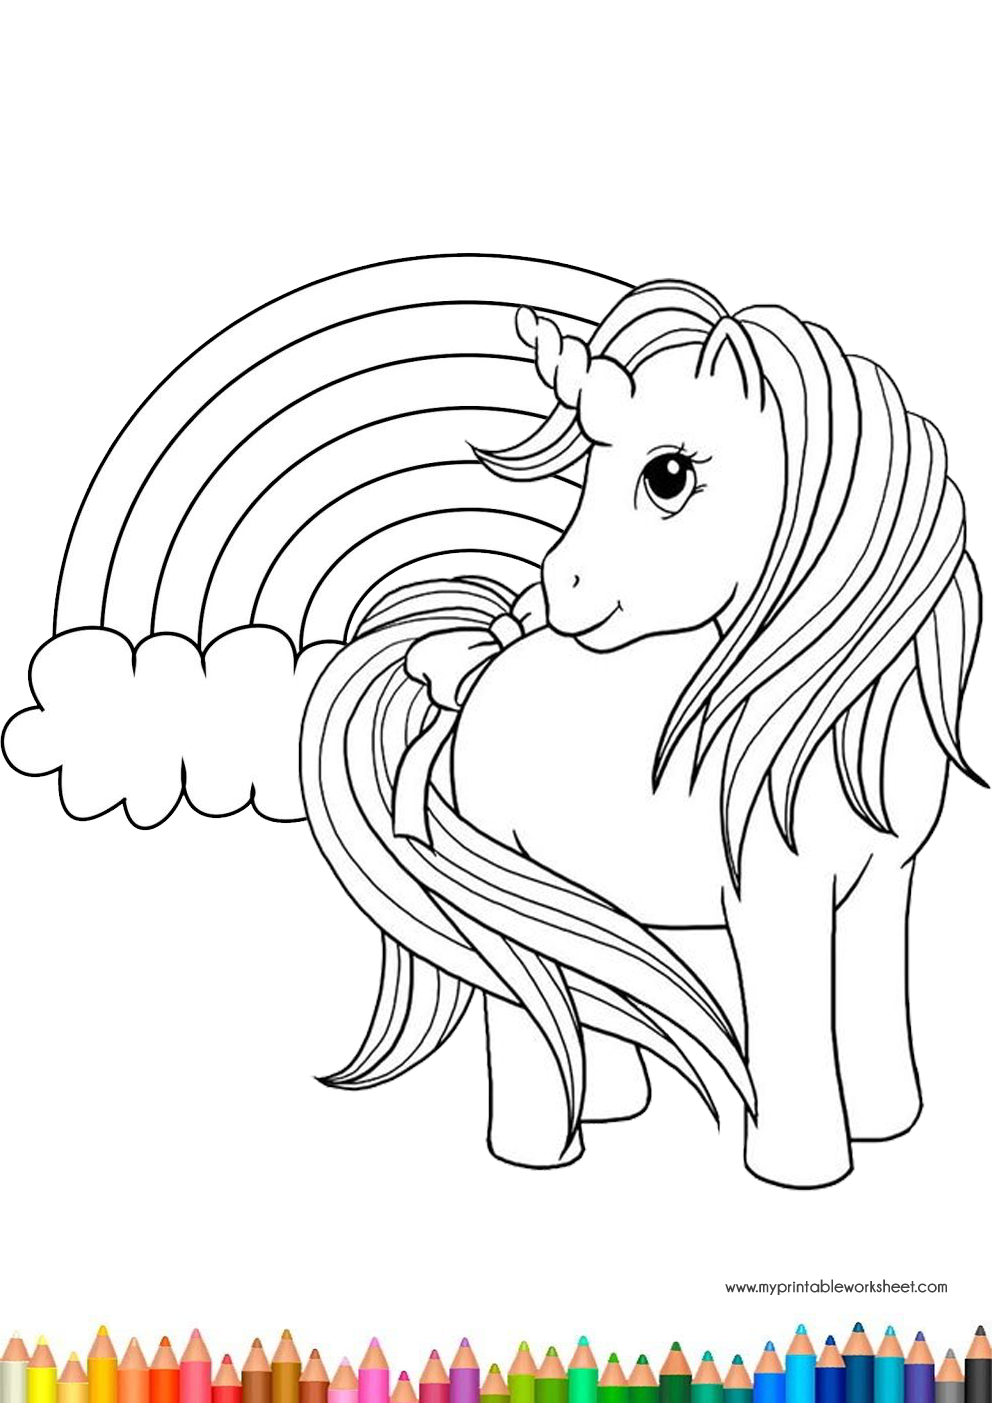 Easy Cute Unicorn Coloring Pages For Kids And Girls Printable Coloring